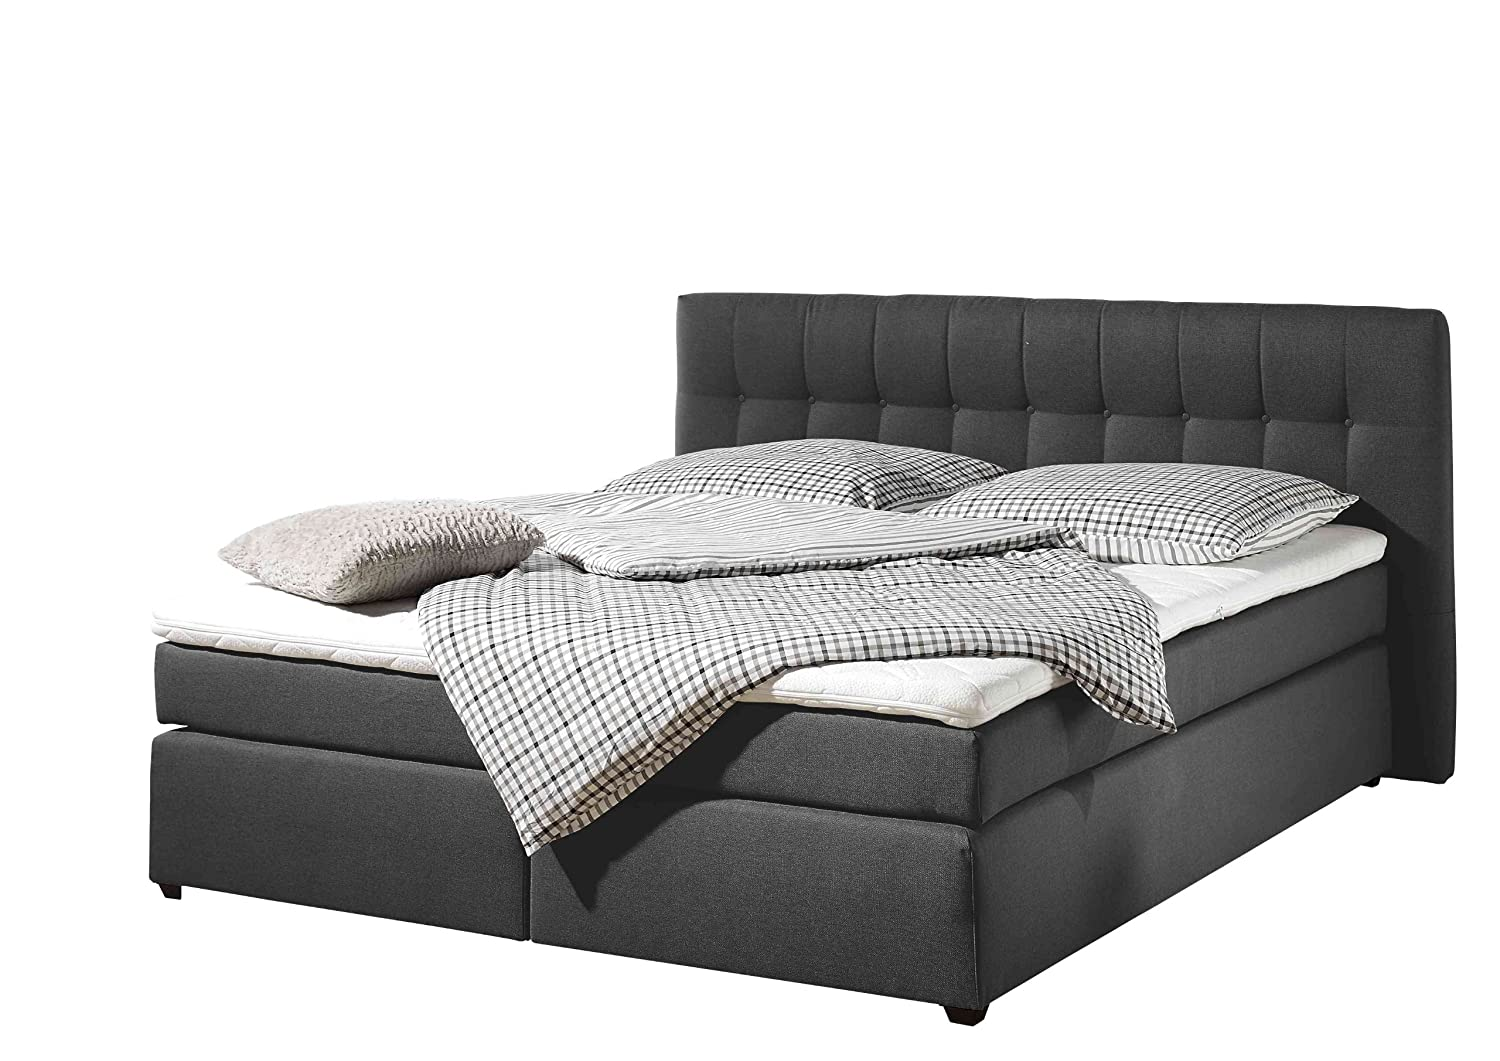 Maintal Betten 236107-3147 Boxspringbett Jeremy 180 x 200 cm inklusive Topper, anthrazit